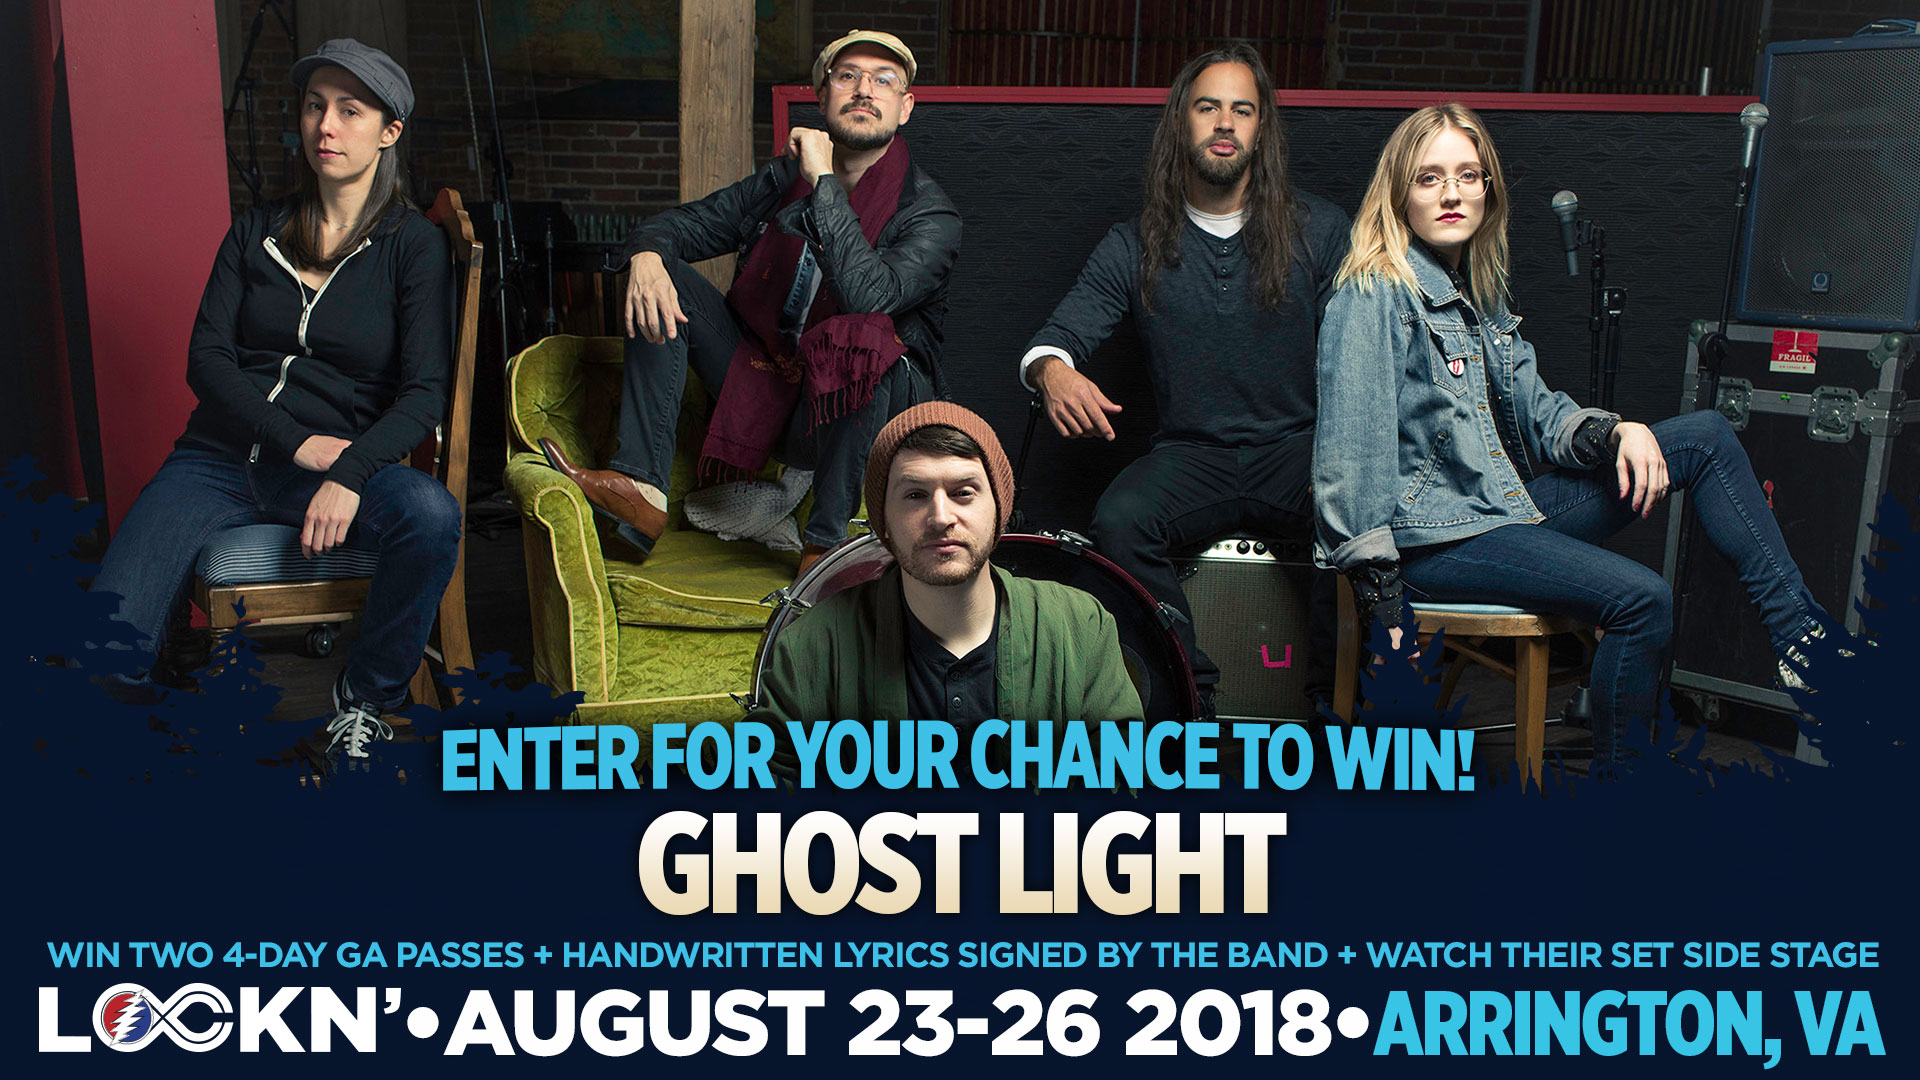 Win Two 4-Day GA Passes to LOCKN' Festival + Handwritten Lyrics Signed By Band + Watch Their Set Side Stage!